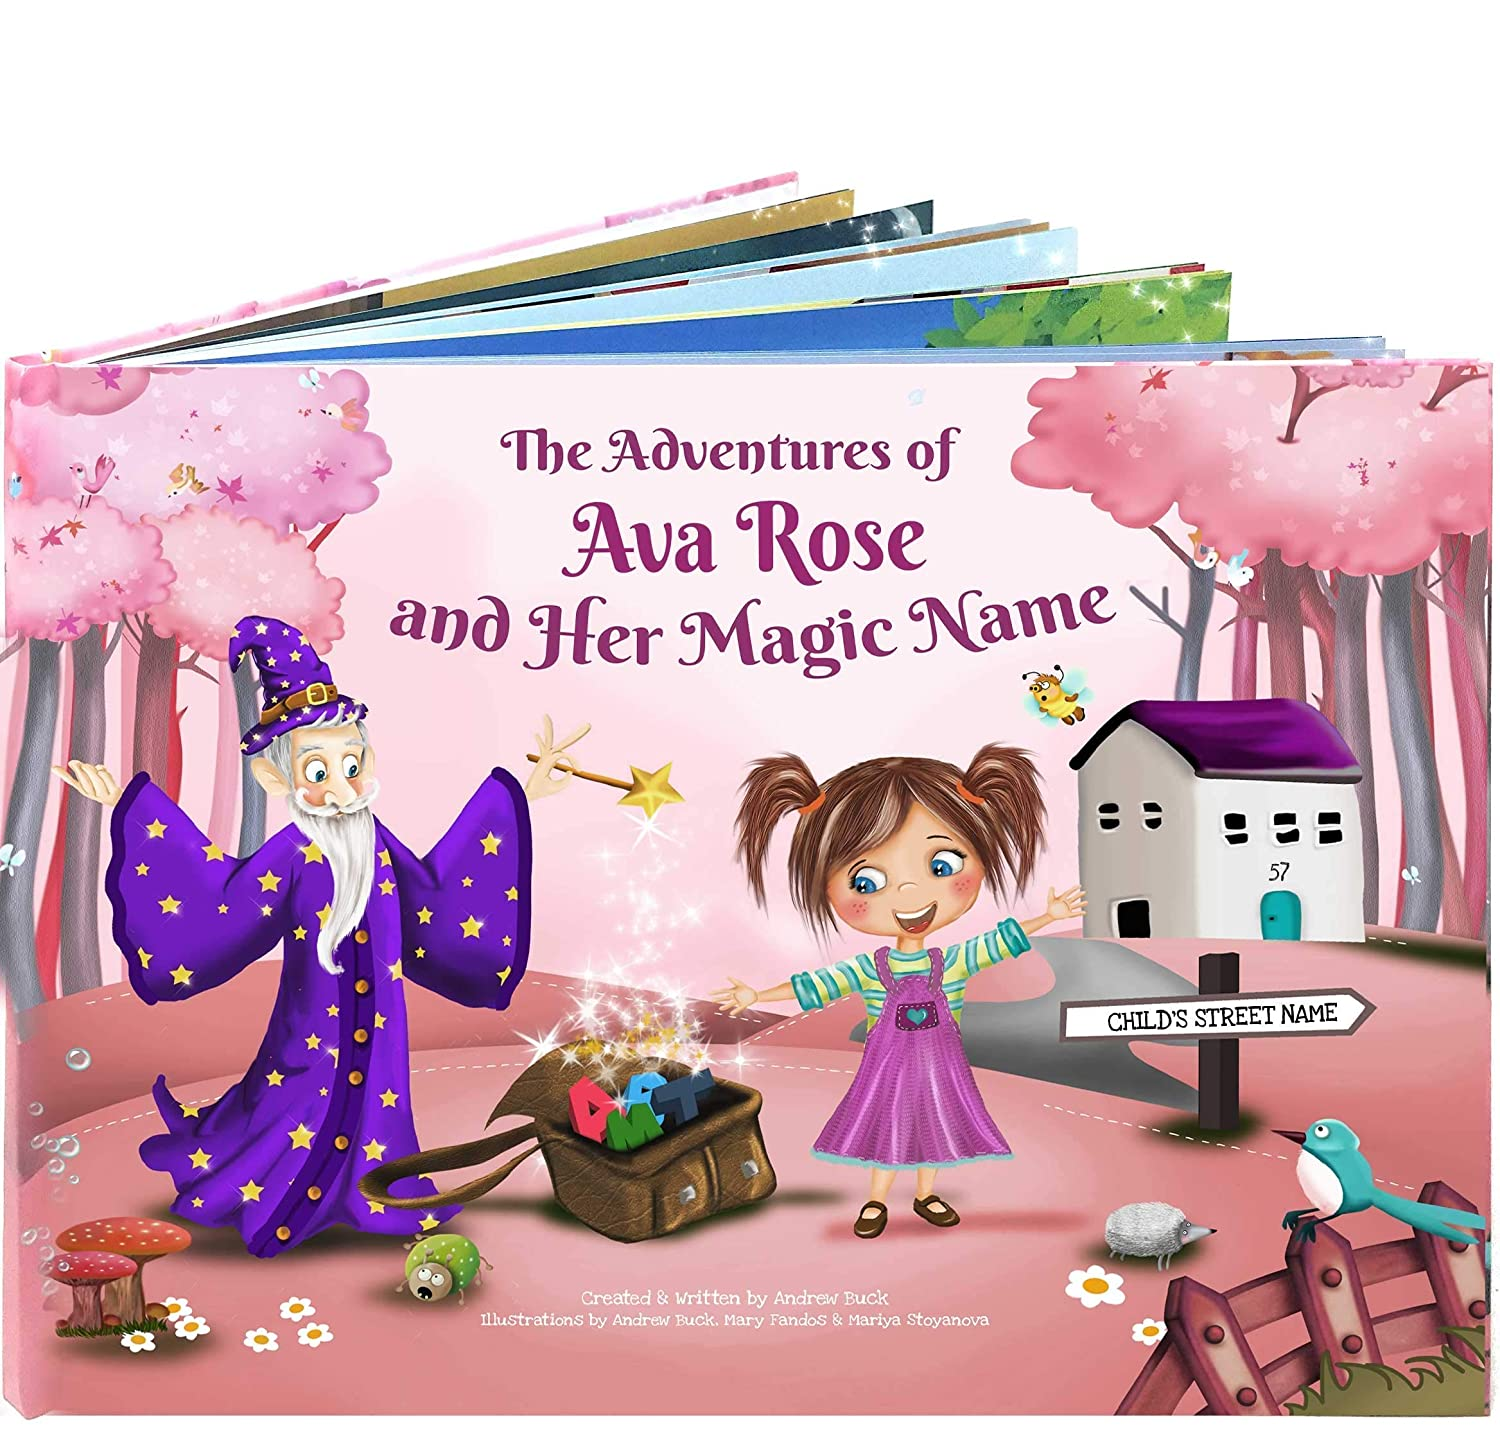 Personalised Keepsake Story Book for Baby and Children. A Unique Keepsake Story Based on the Letters of a Child's Name. Pink for Girls, Blue for Boys.